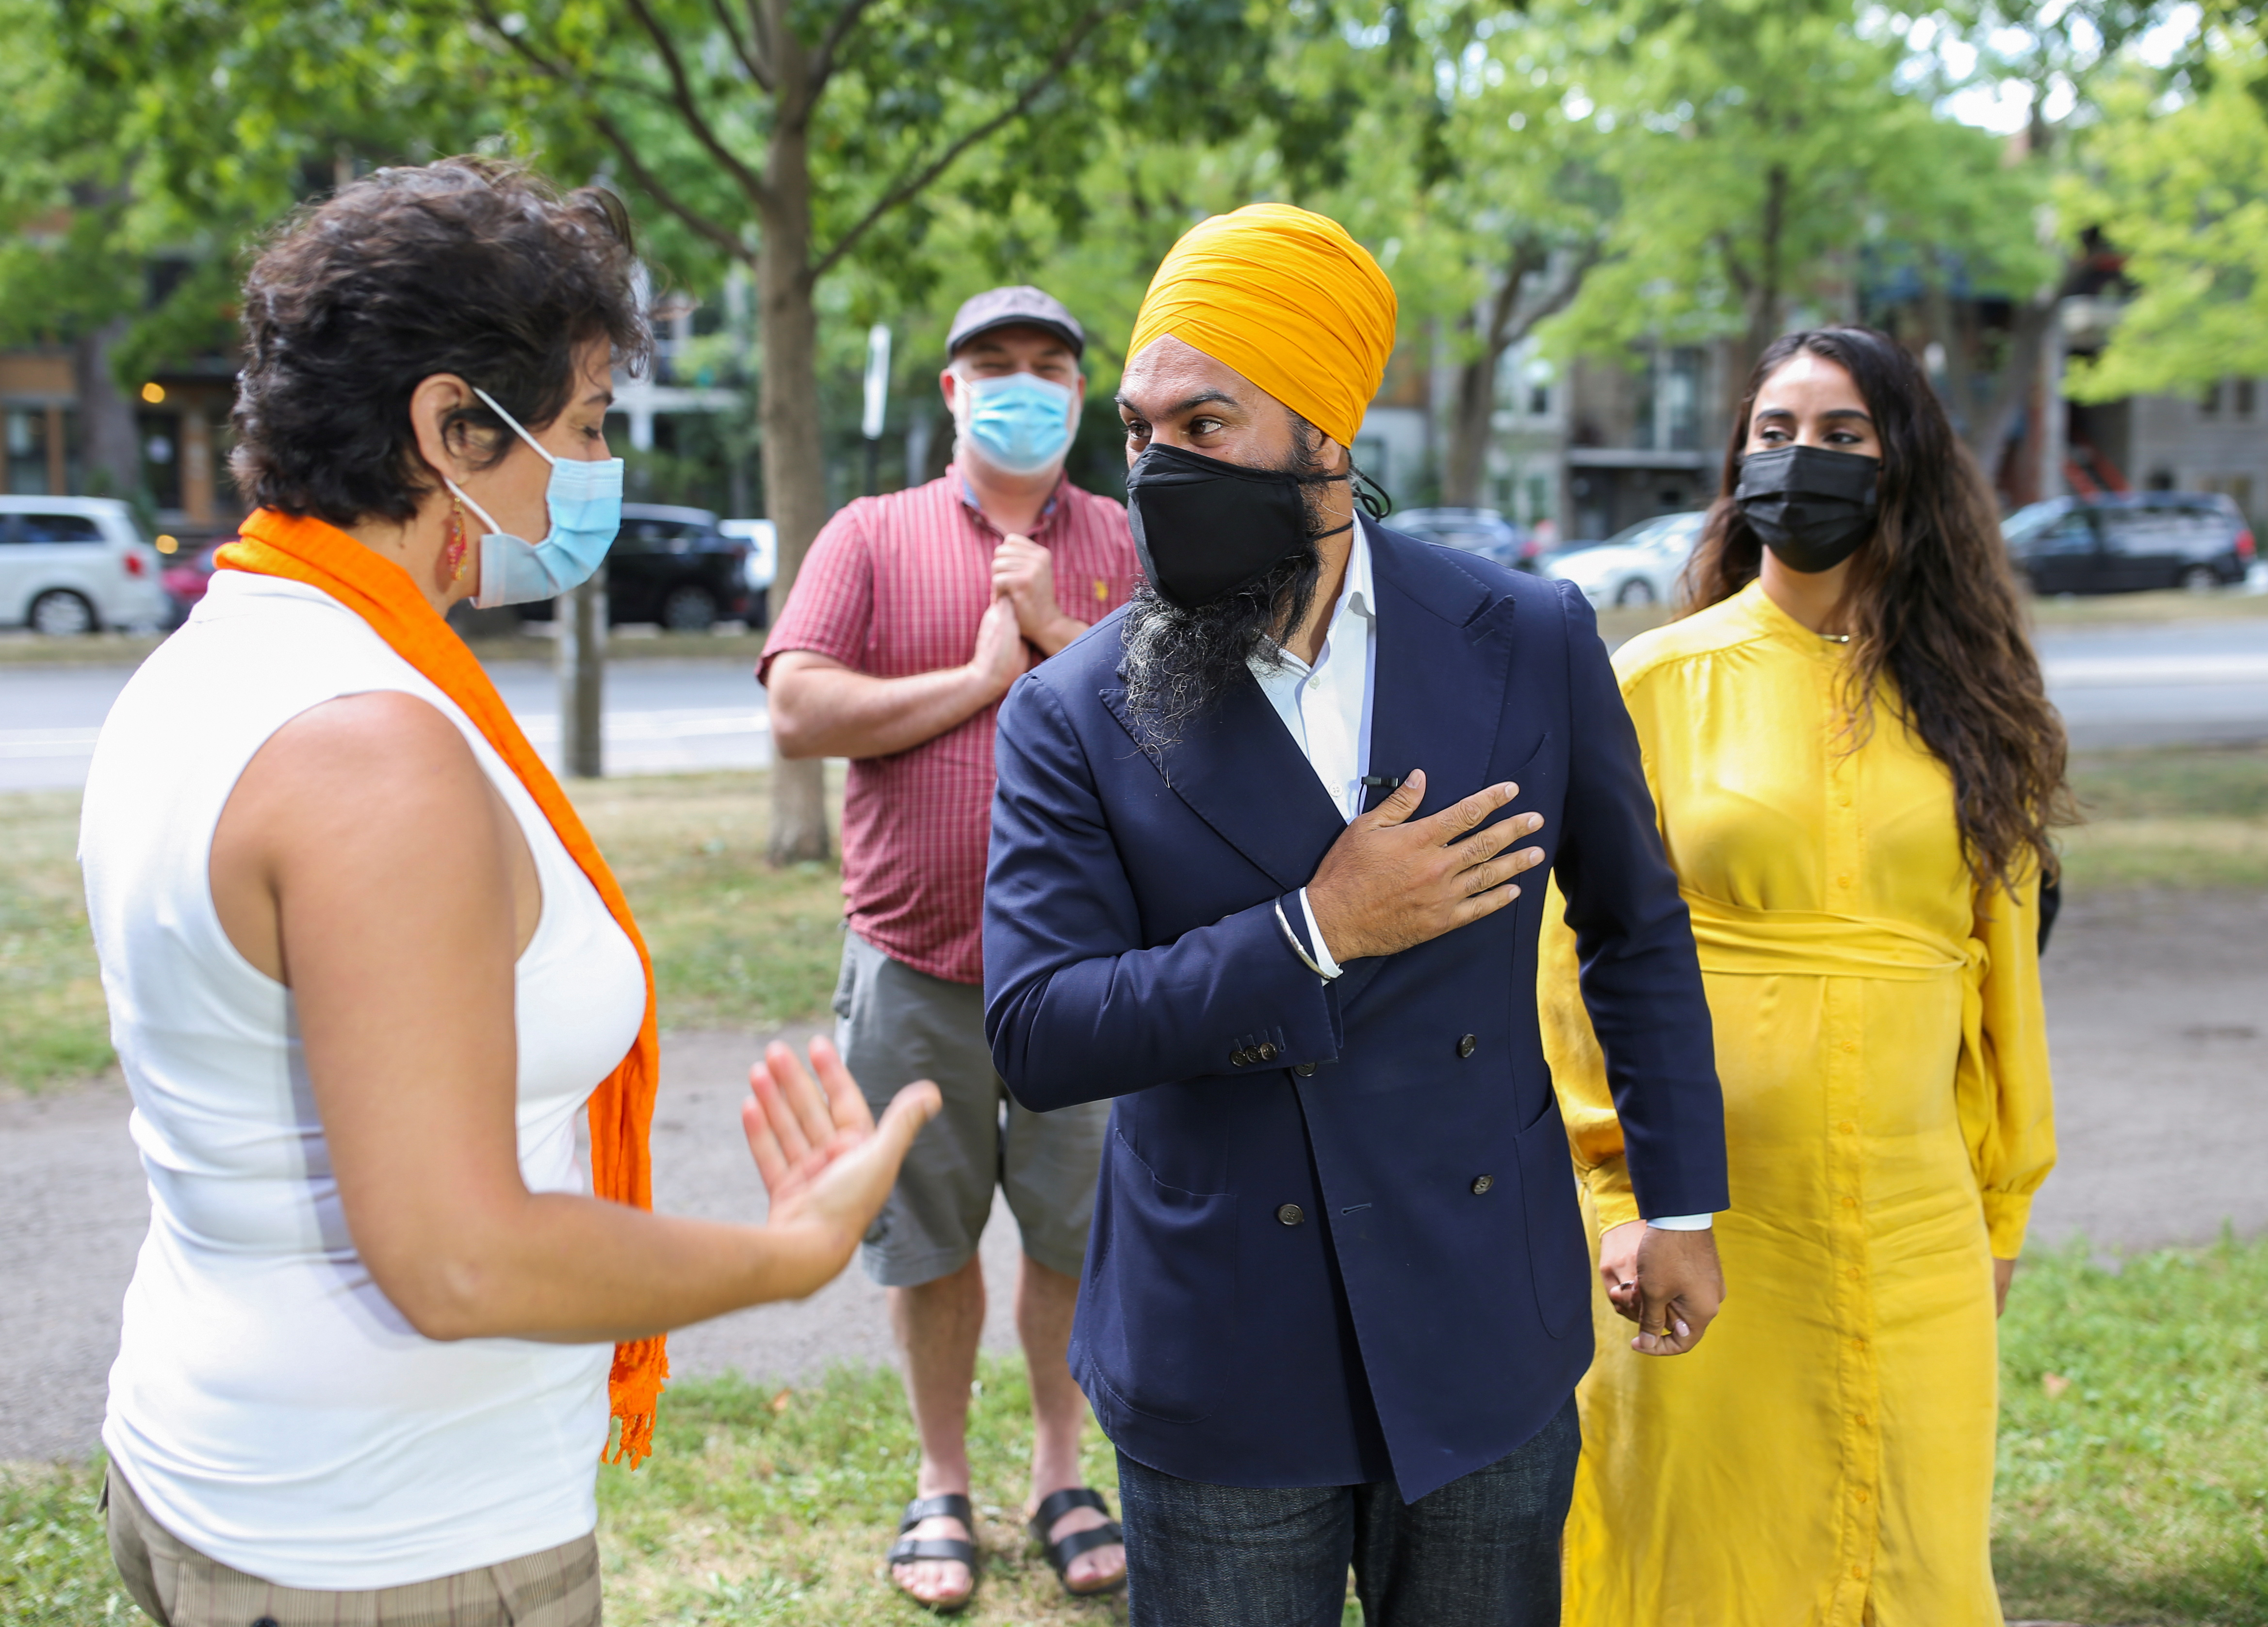 Canada's New Democratic Party (NDP) leader Jagmeet Singh with his wife Gurkiran Kaur Sidhu greet candidates and supporters prior to speaking with the press after Prime Minister Justin Trudeau called an early election, in Montreal, Quebec, Canada August 15, 2021.  REUTERS/Christinne Muschi